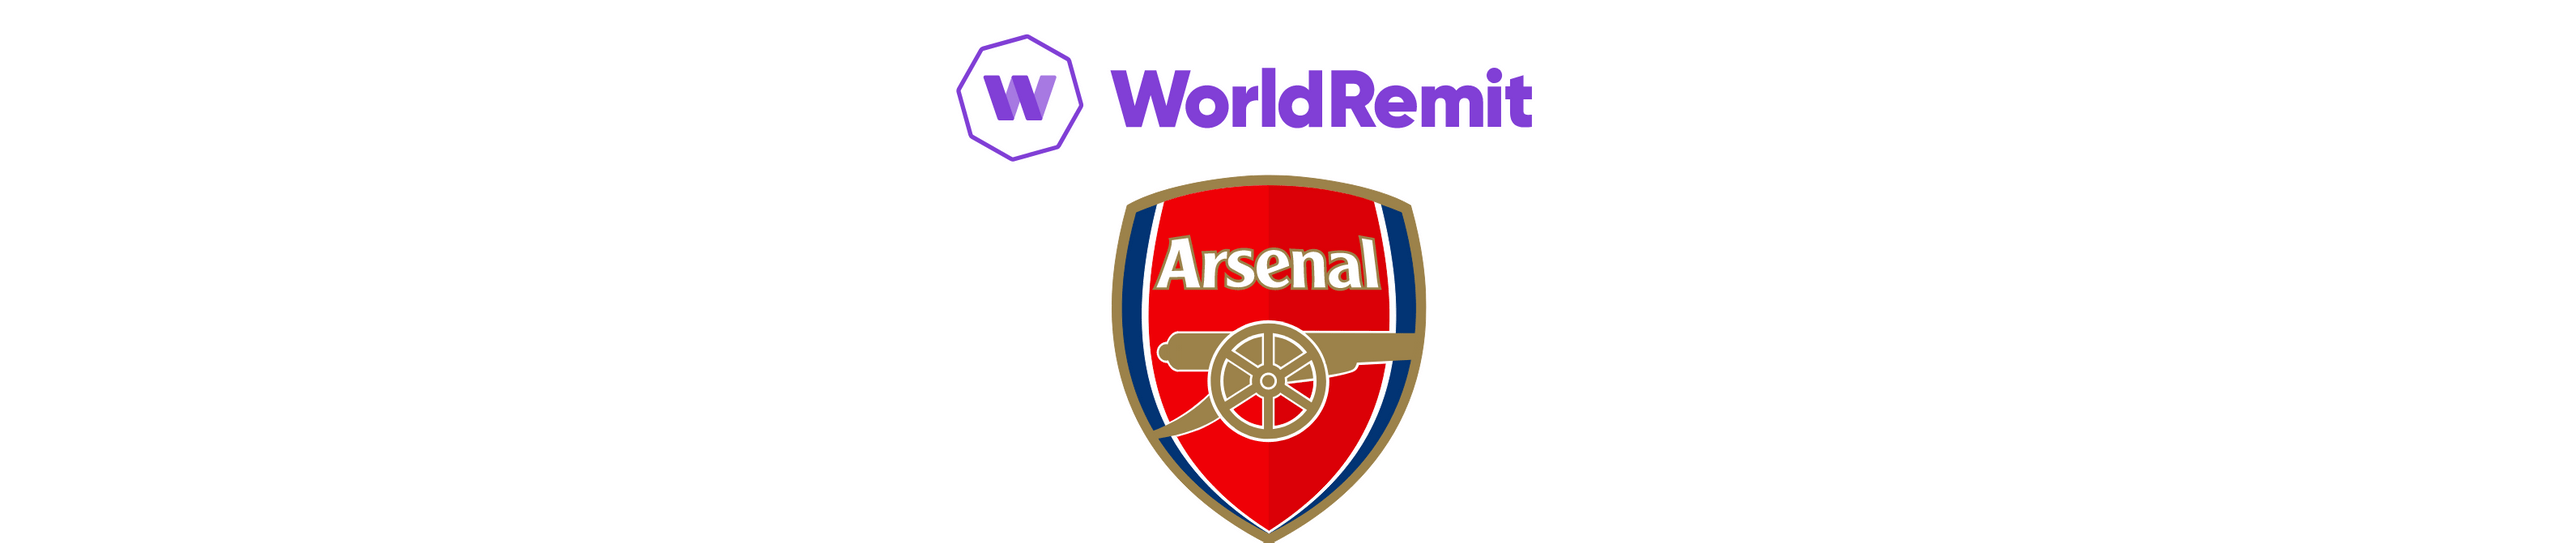 A banner with WorldRemit and Arsenal logos